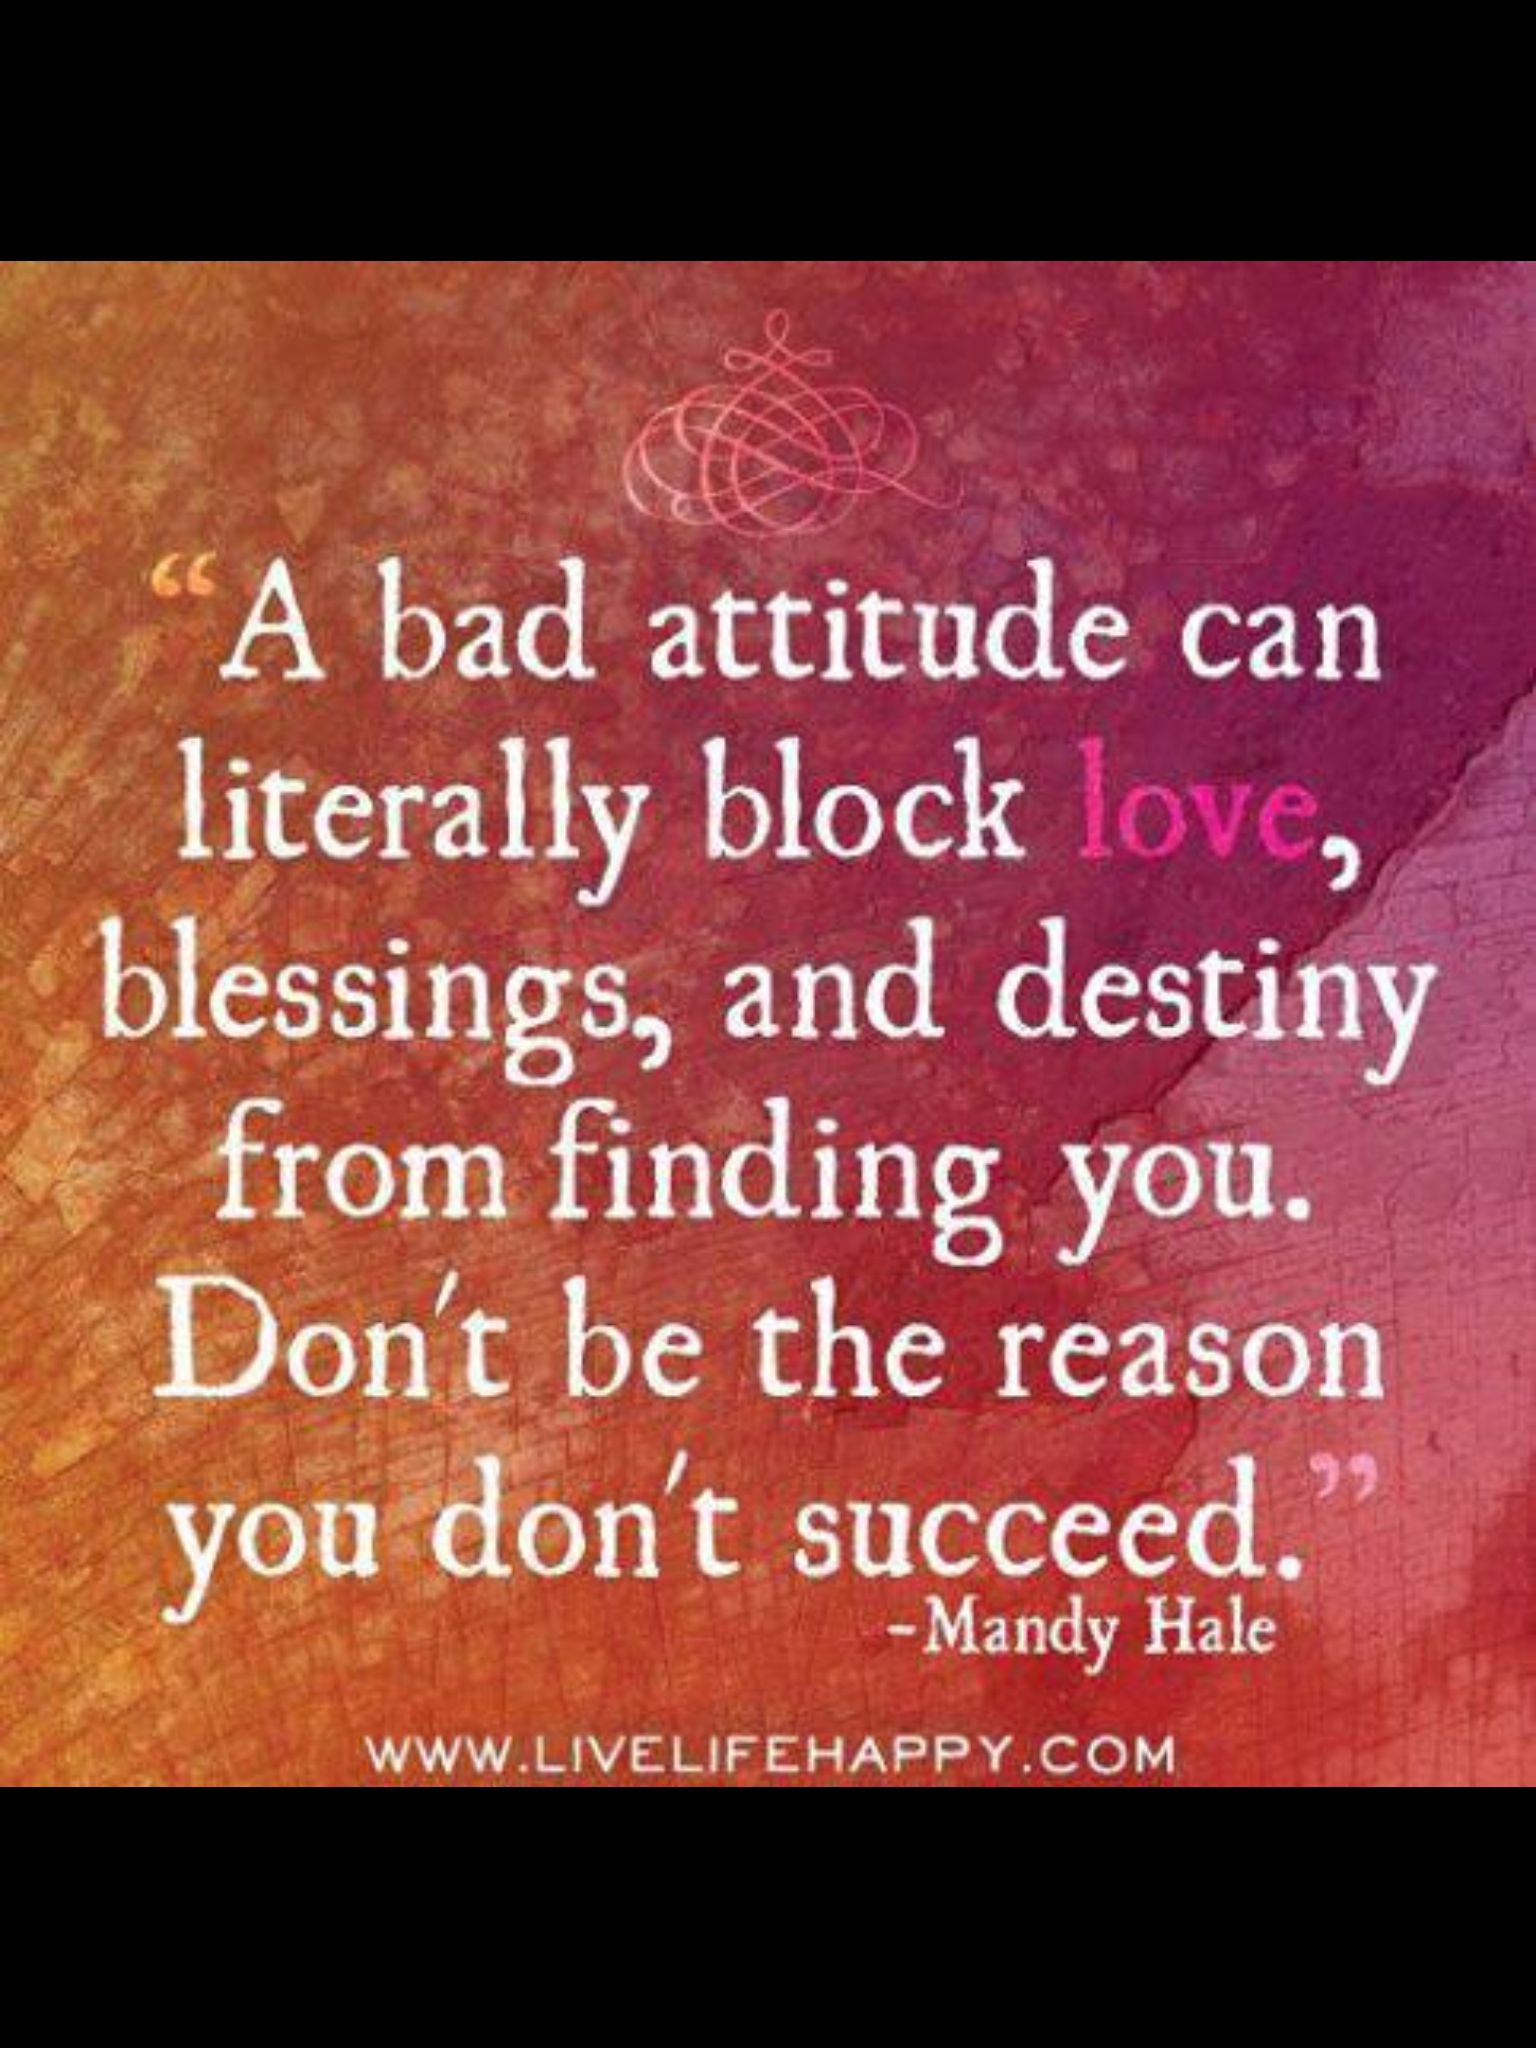 Bad Attitude Quotes Carry A Positive Attitude  Inspiration.motivation